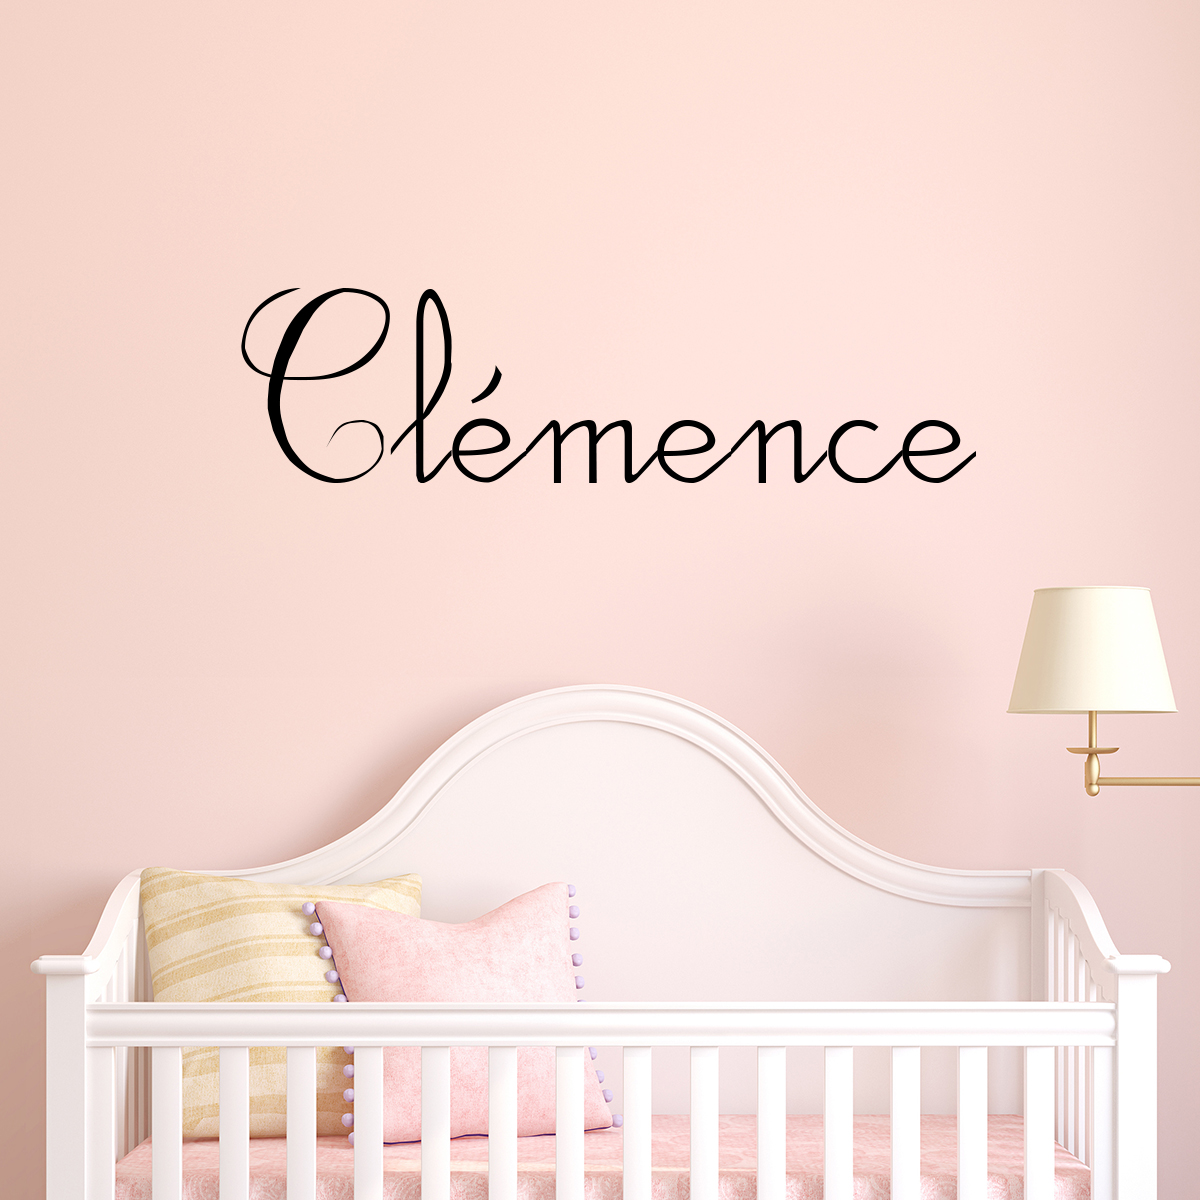 sticker pr nom personnalisable scolaire c leste stickers chambre enfants chambre b b. Black Bedroom Furniture Sets. Home Design Ideas